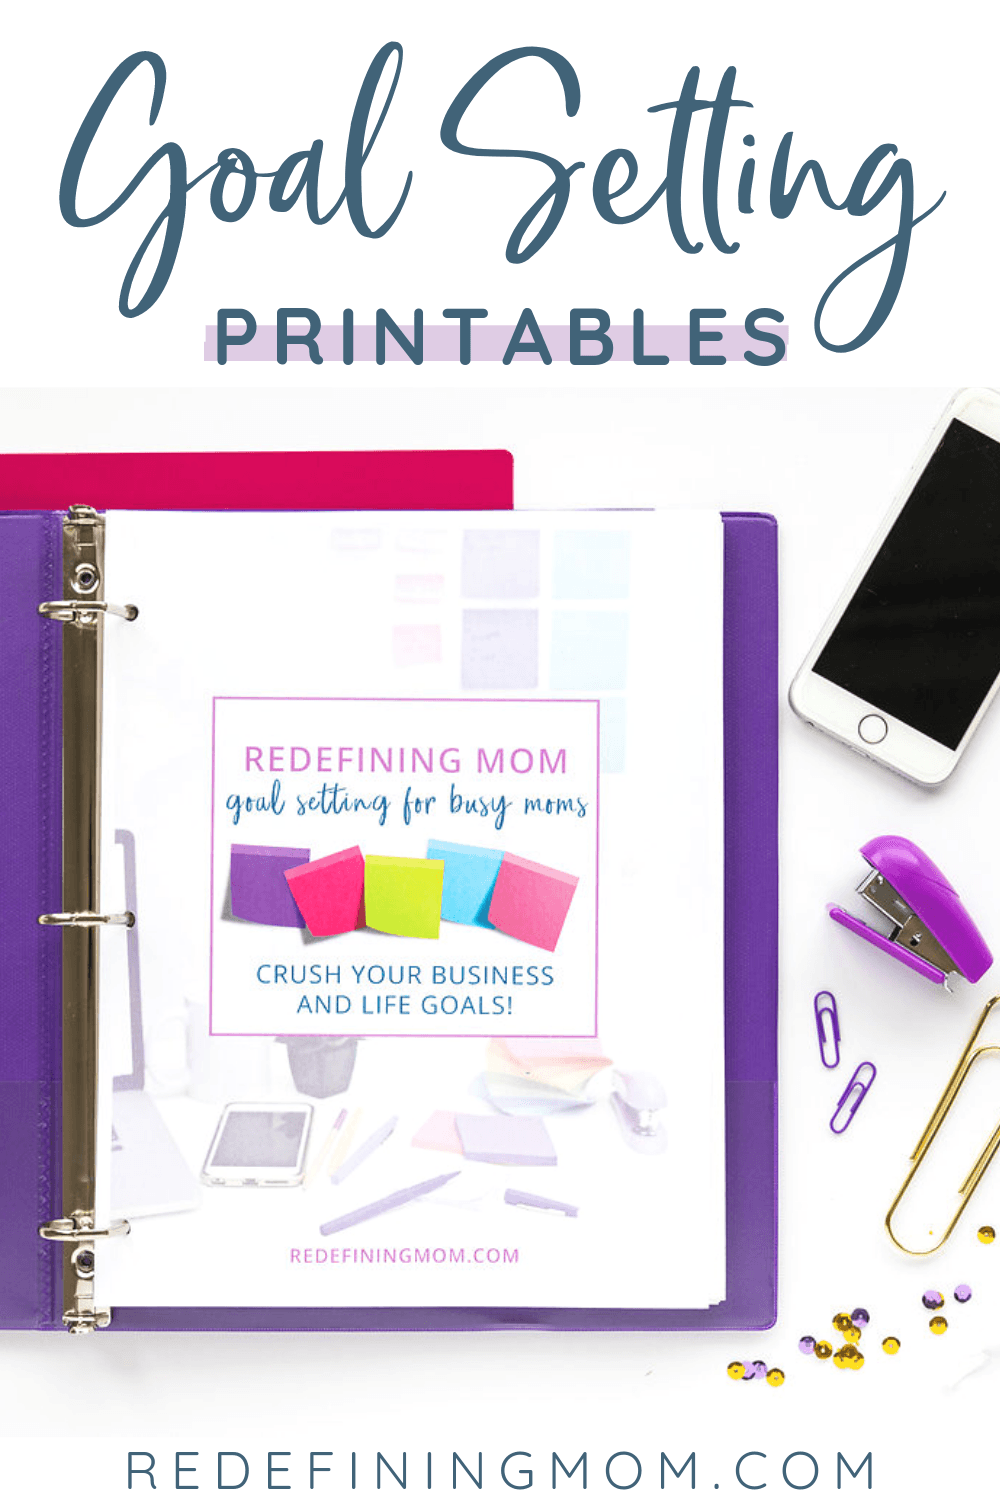 Do you struggle with goal setting? I have an entire goal planning workbook for you! Download your free goal setting printable worksheets. This life goal planning printable workbook will help you set successful and measurable goals for yourself.